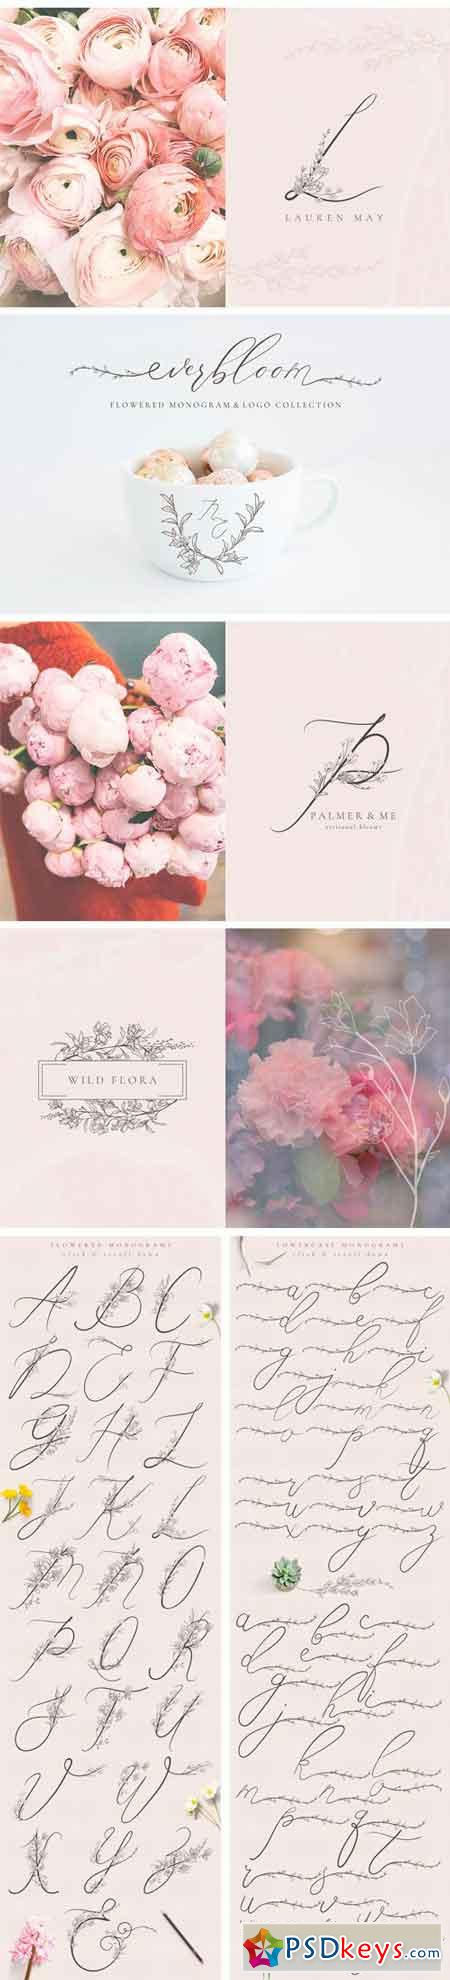 Flowered Monogram & Logo Collection 2480124